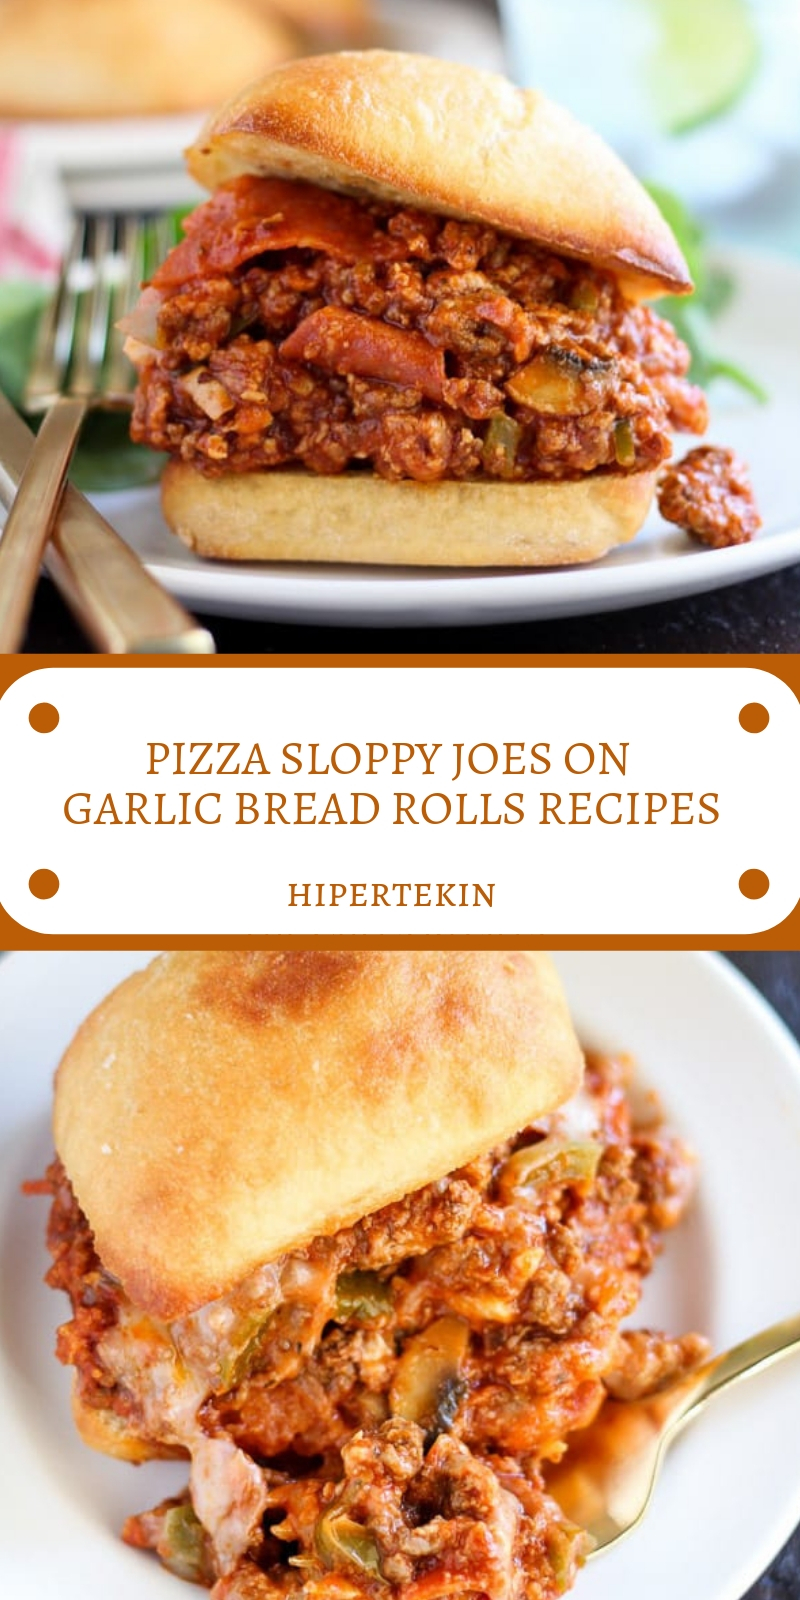 PIZZA SLOPPY JOES ON GARLIC BREAD ROLLS RECIPES